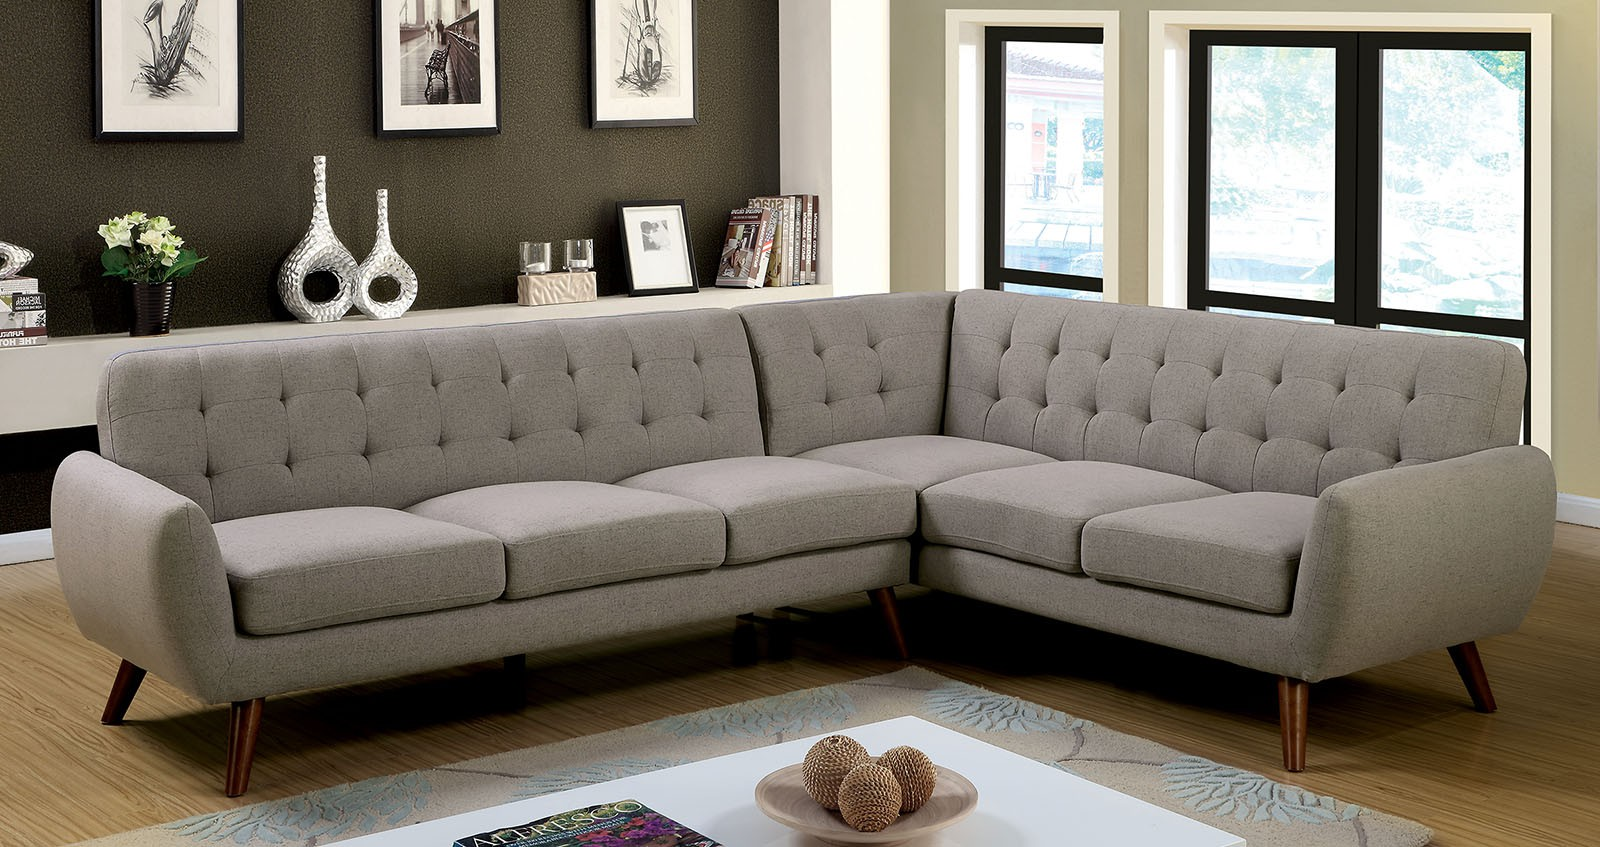 Foa sectional sofa gray color cm6144 hot sectionals - Gray modern living room furniture ...